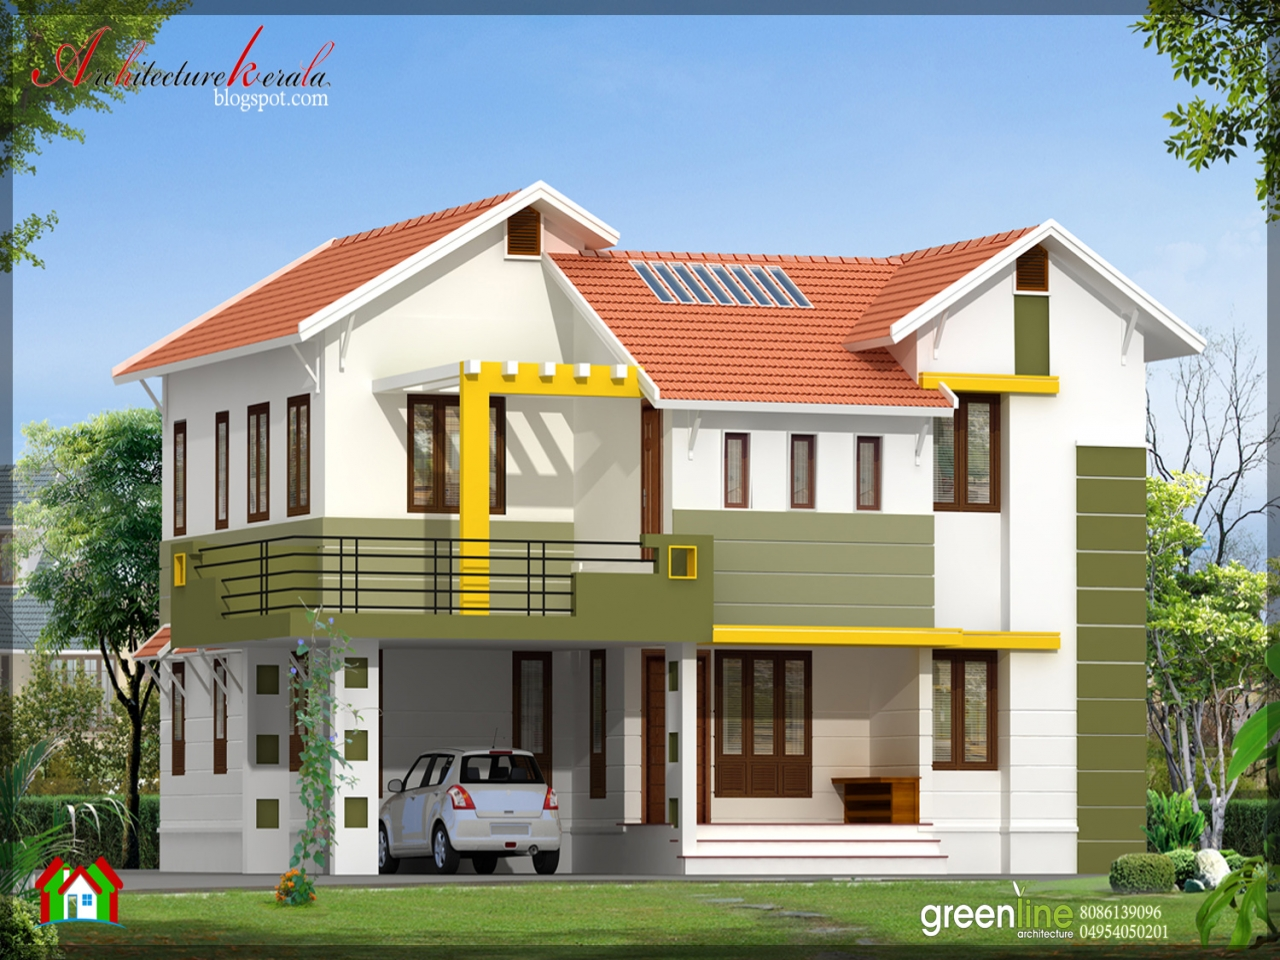 Simple modern house designs simple house design in india for Simple but modern house design